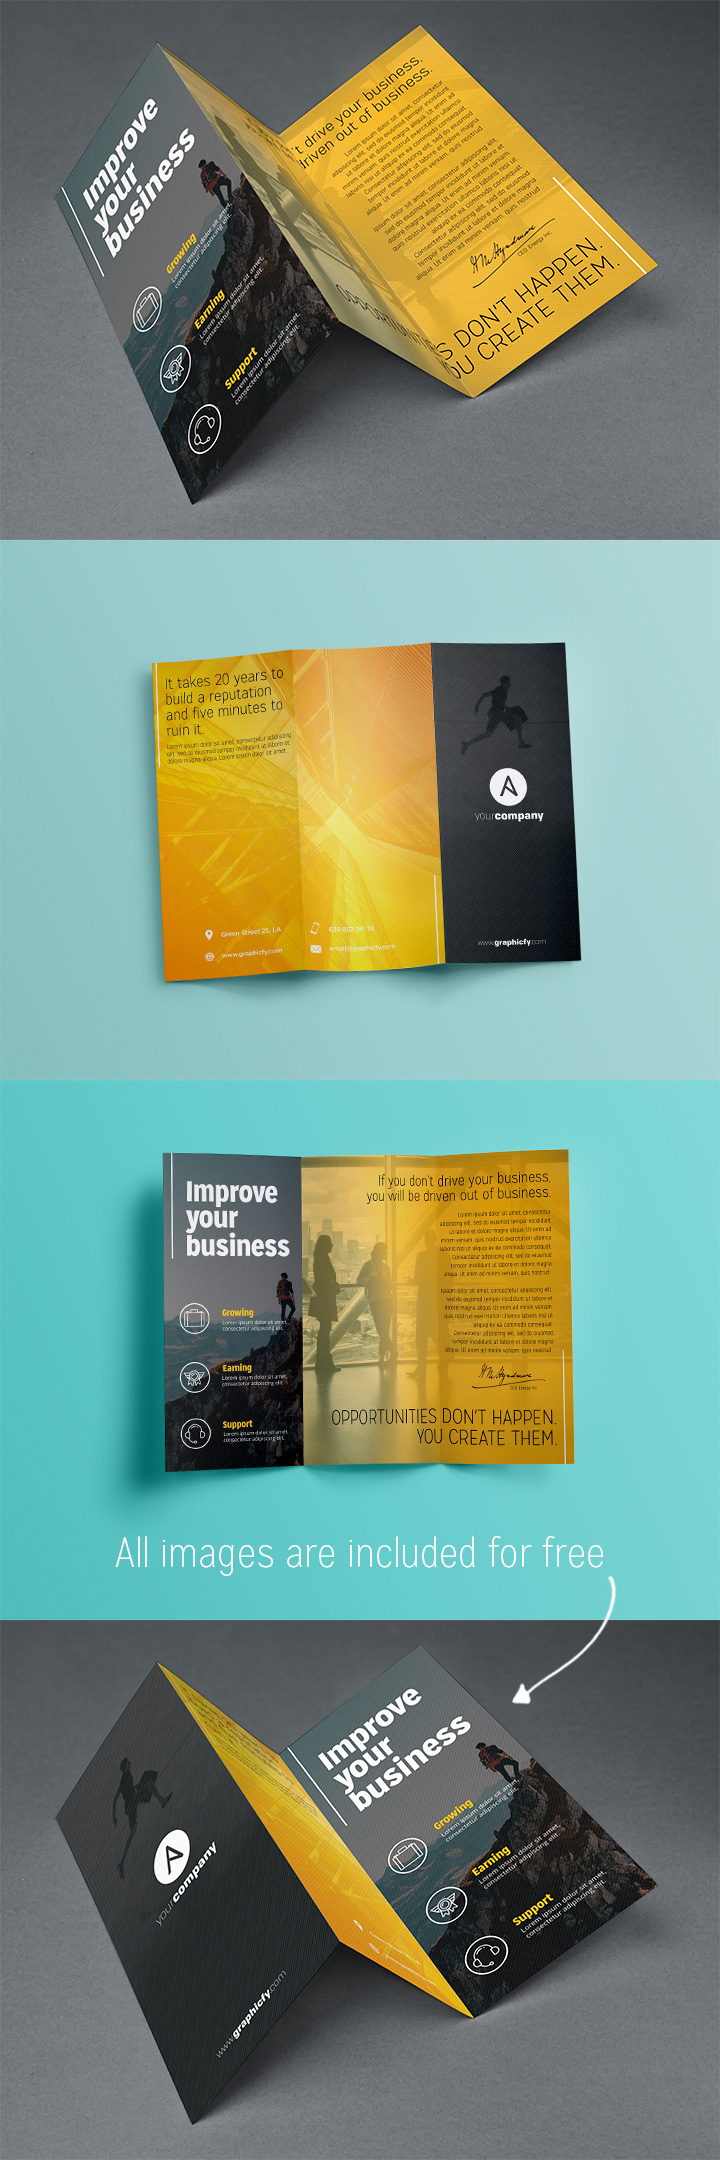 Tri fold brochure template psd brochure templates for Tri fold brochure psd template